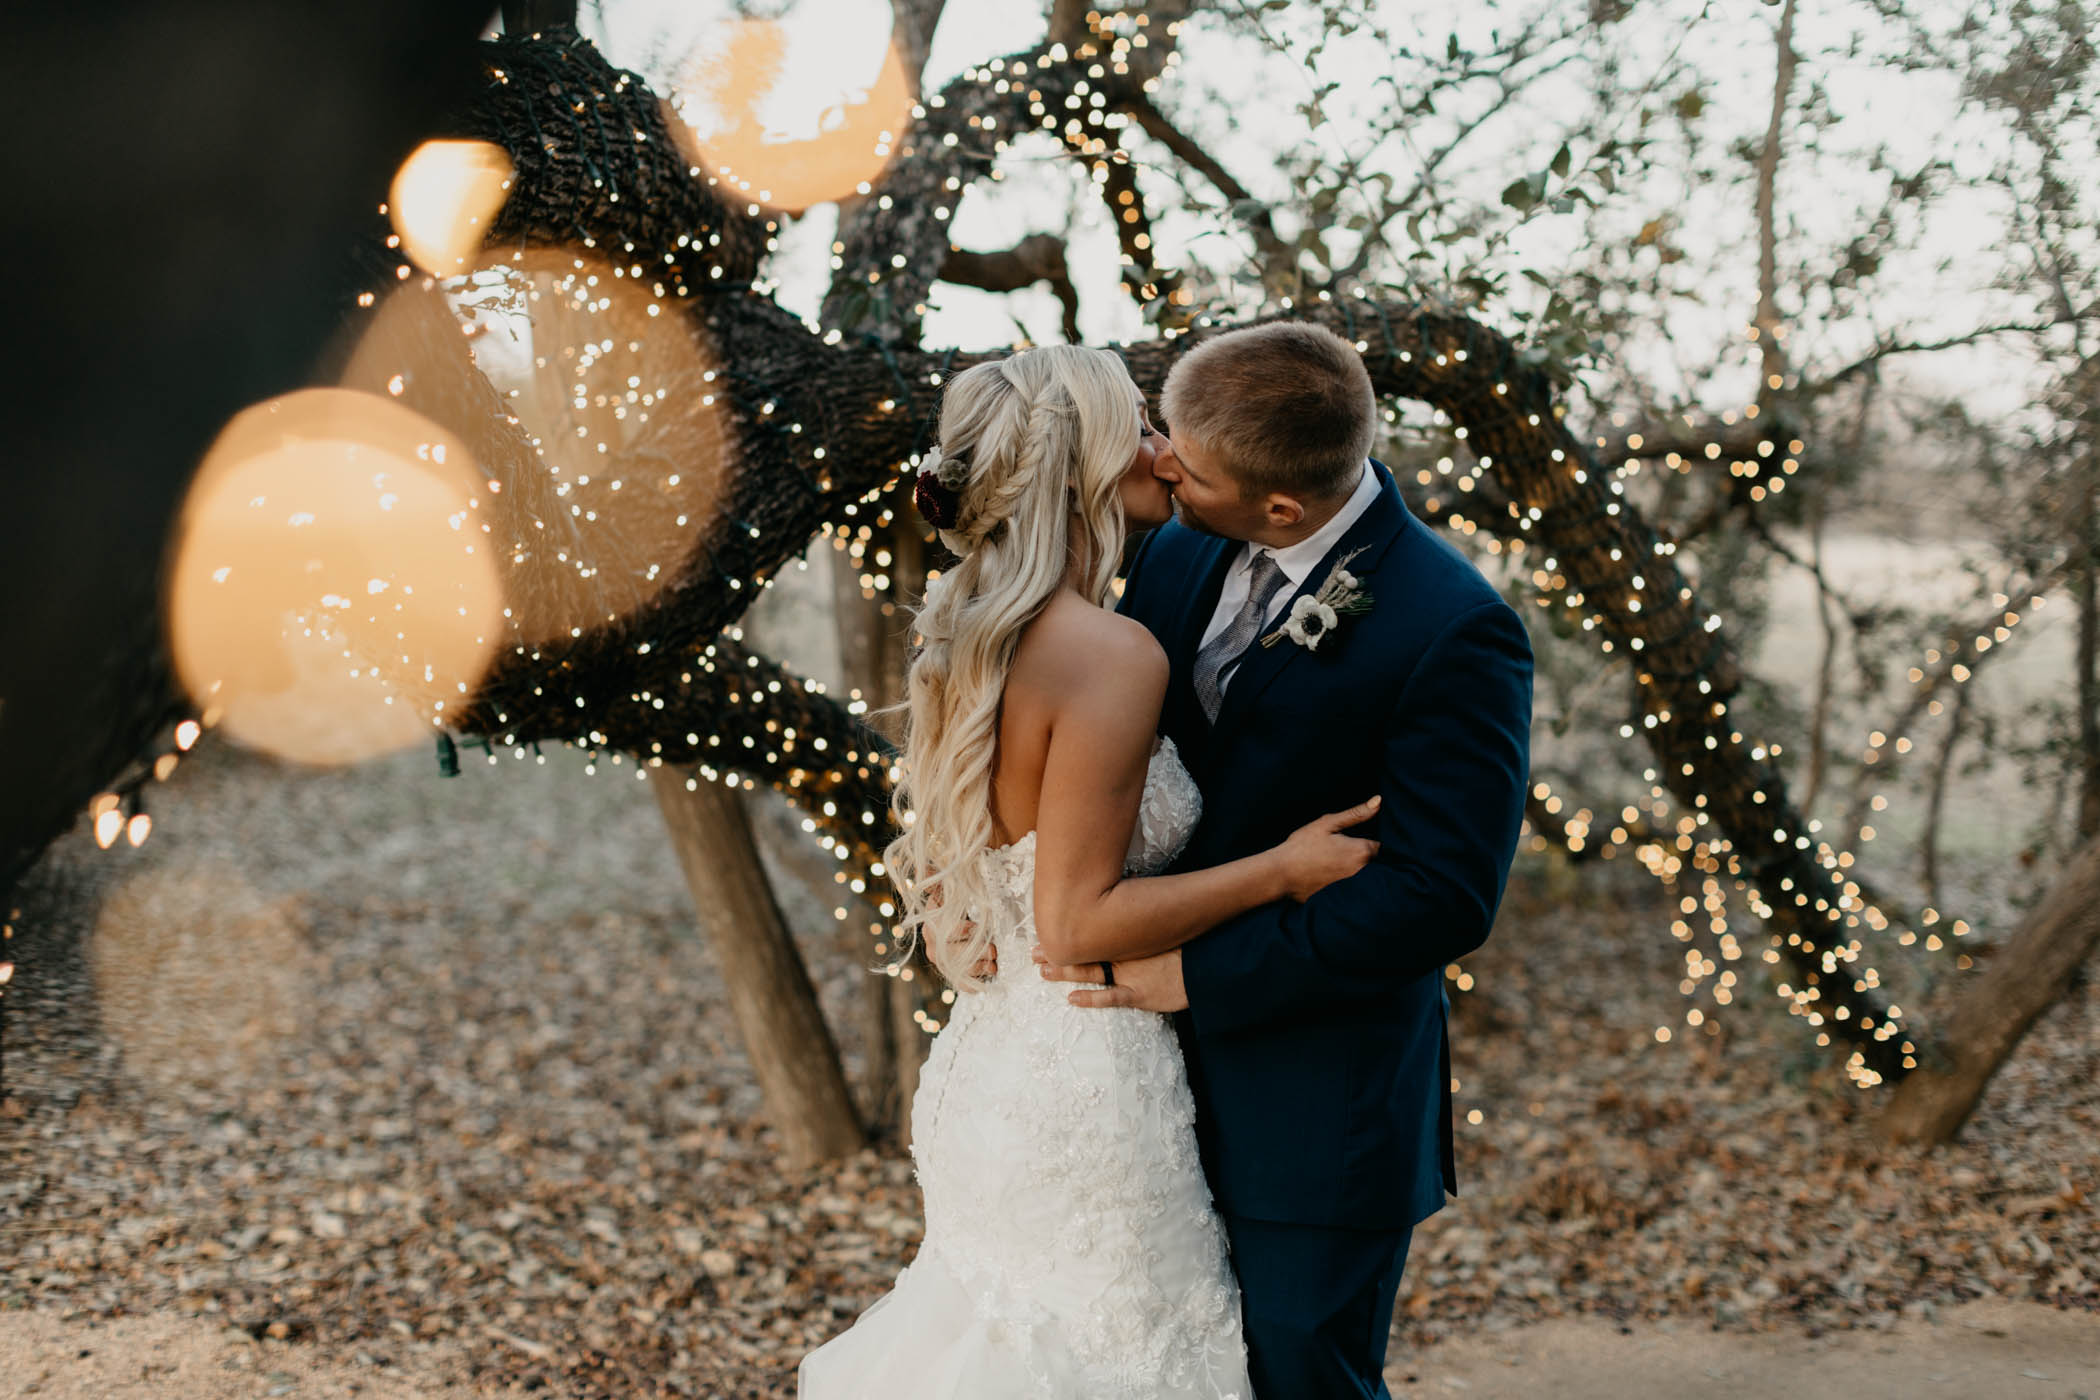 sparkle Christmas lights on tree during bride and groom wedding day